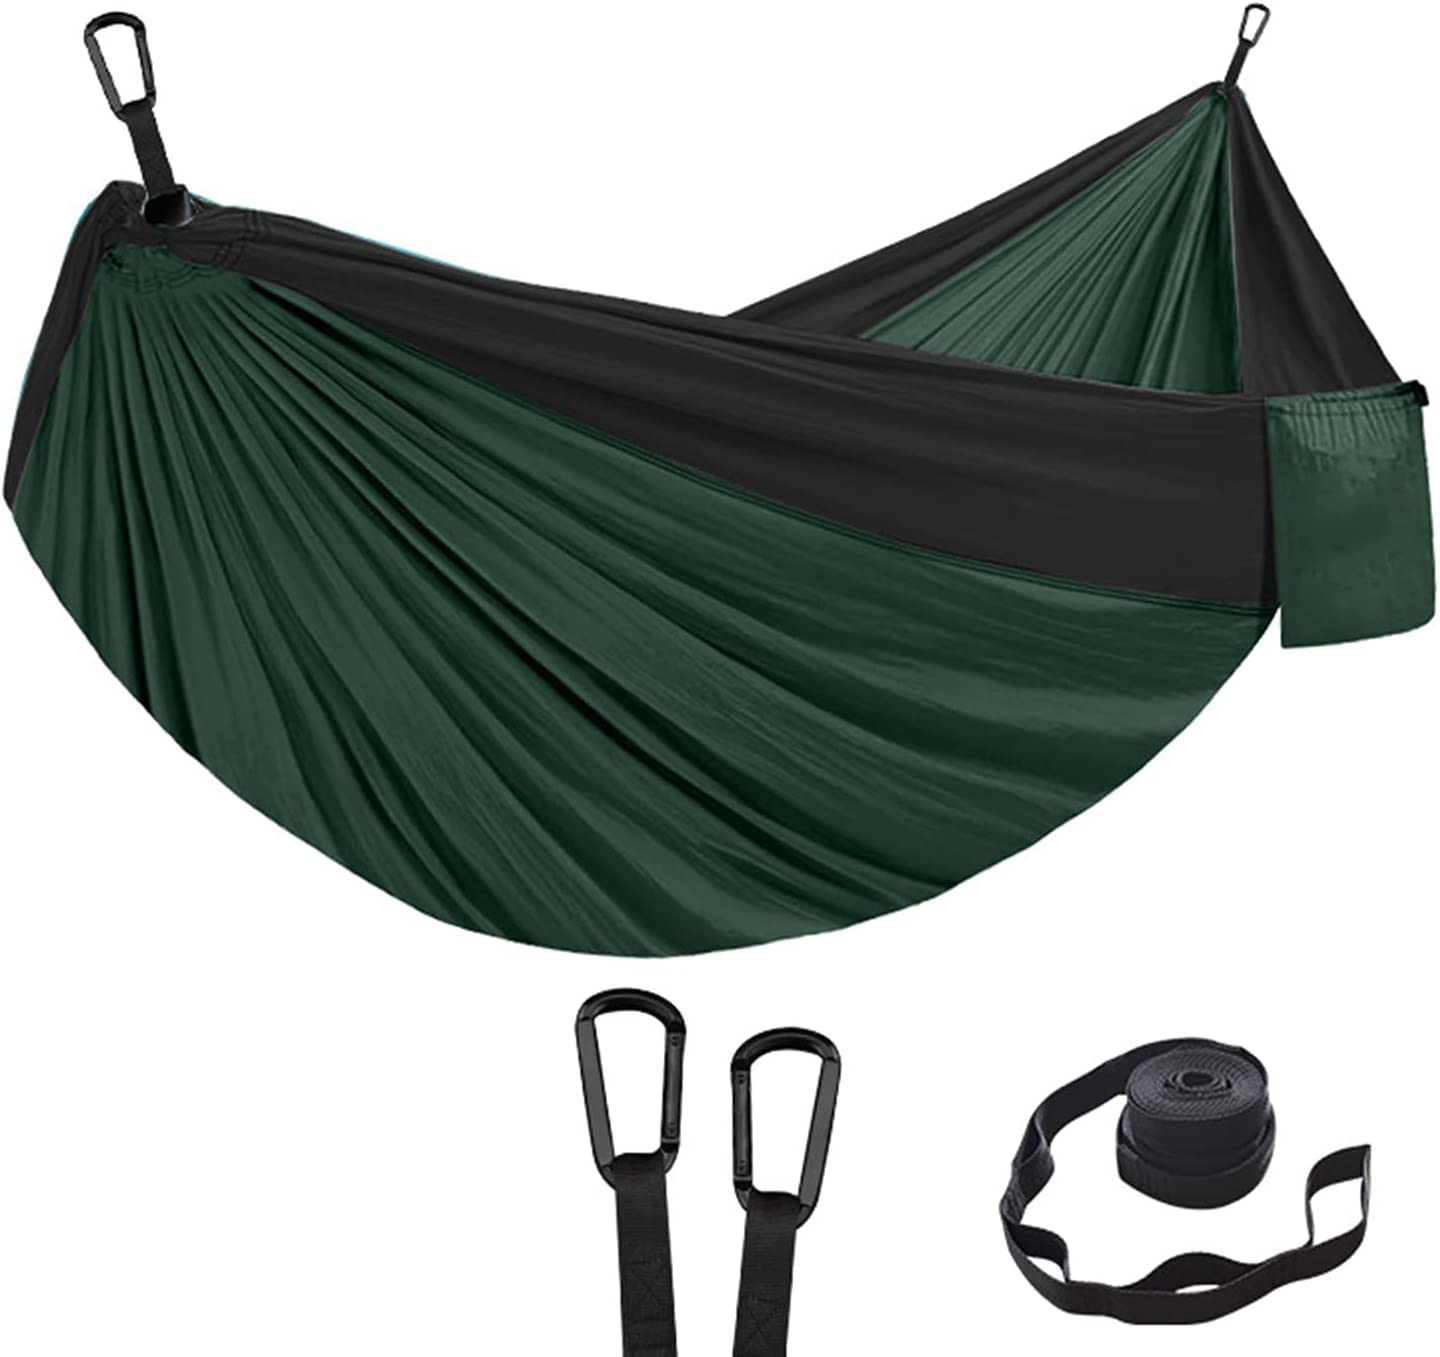 Outdoor Hammock Portable 5 ☆ very popular Breathable Swing Hanging Chai Free shipping